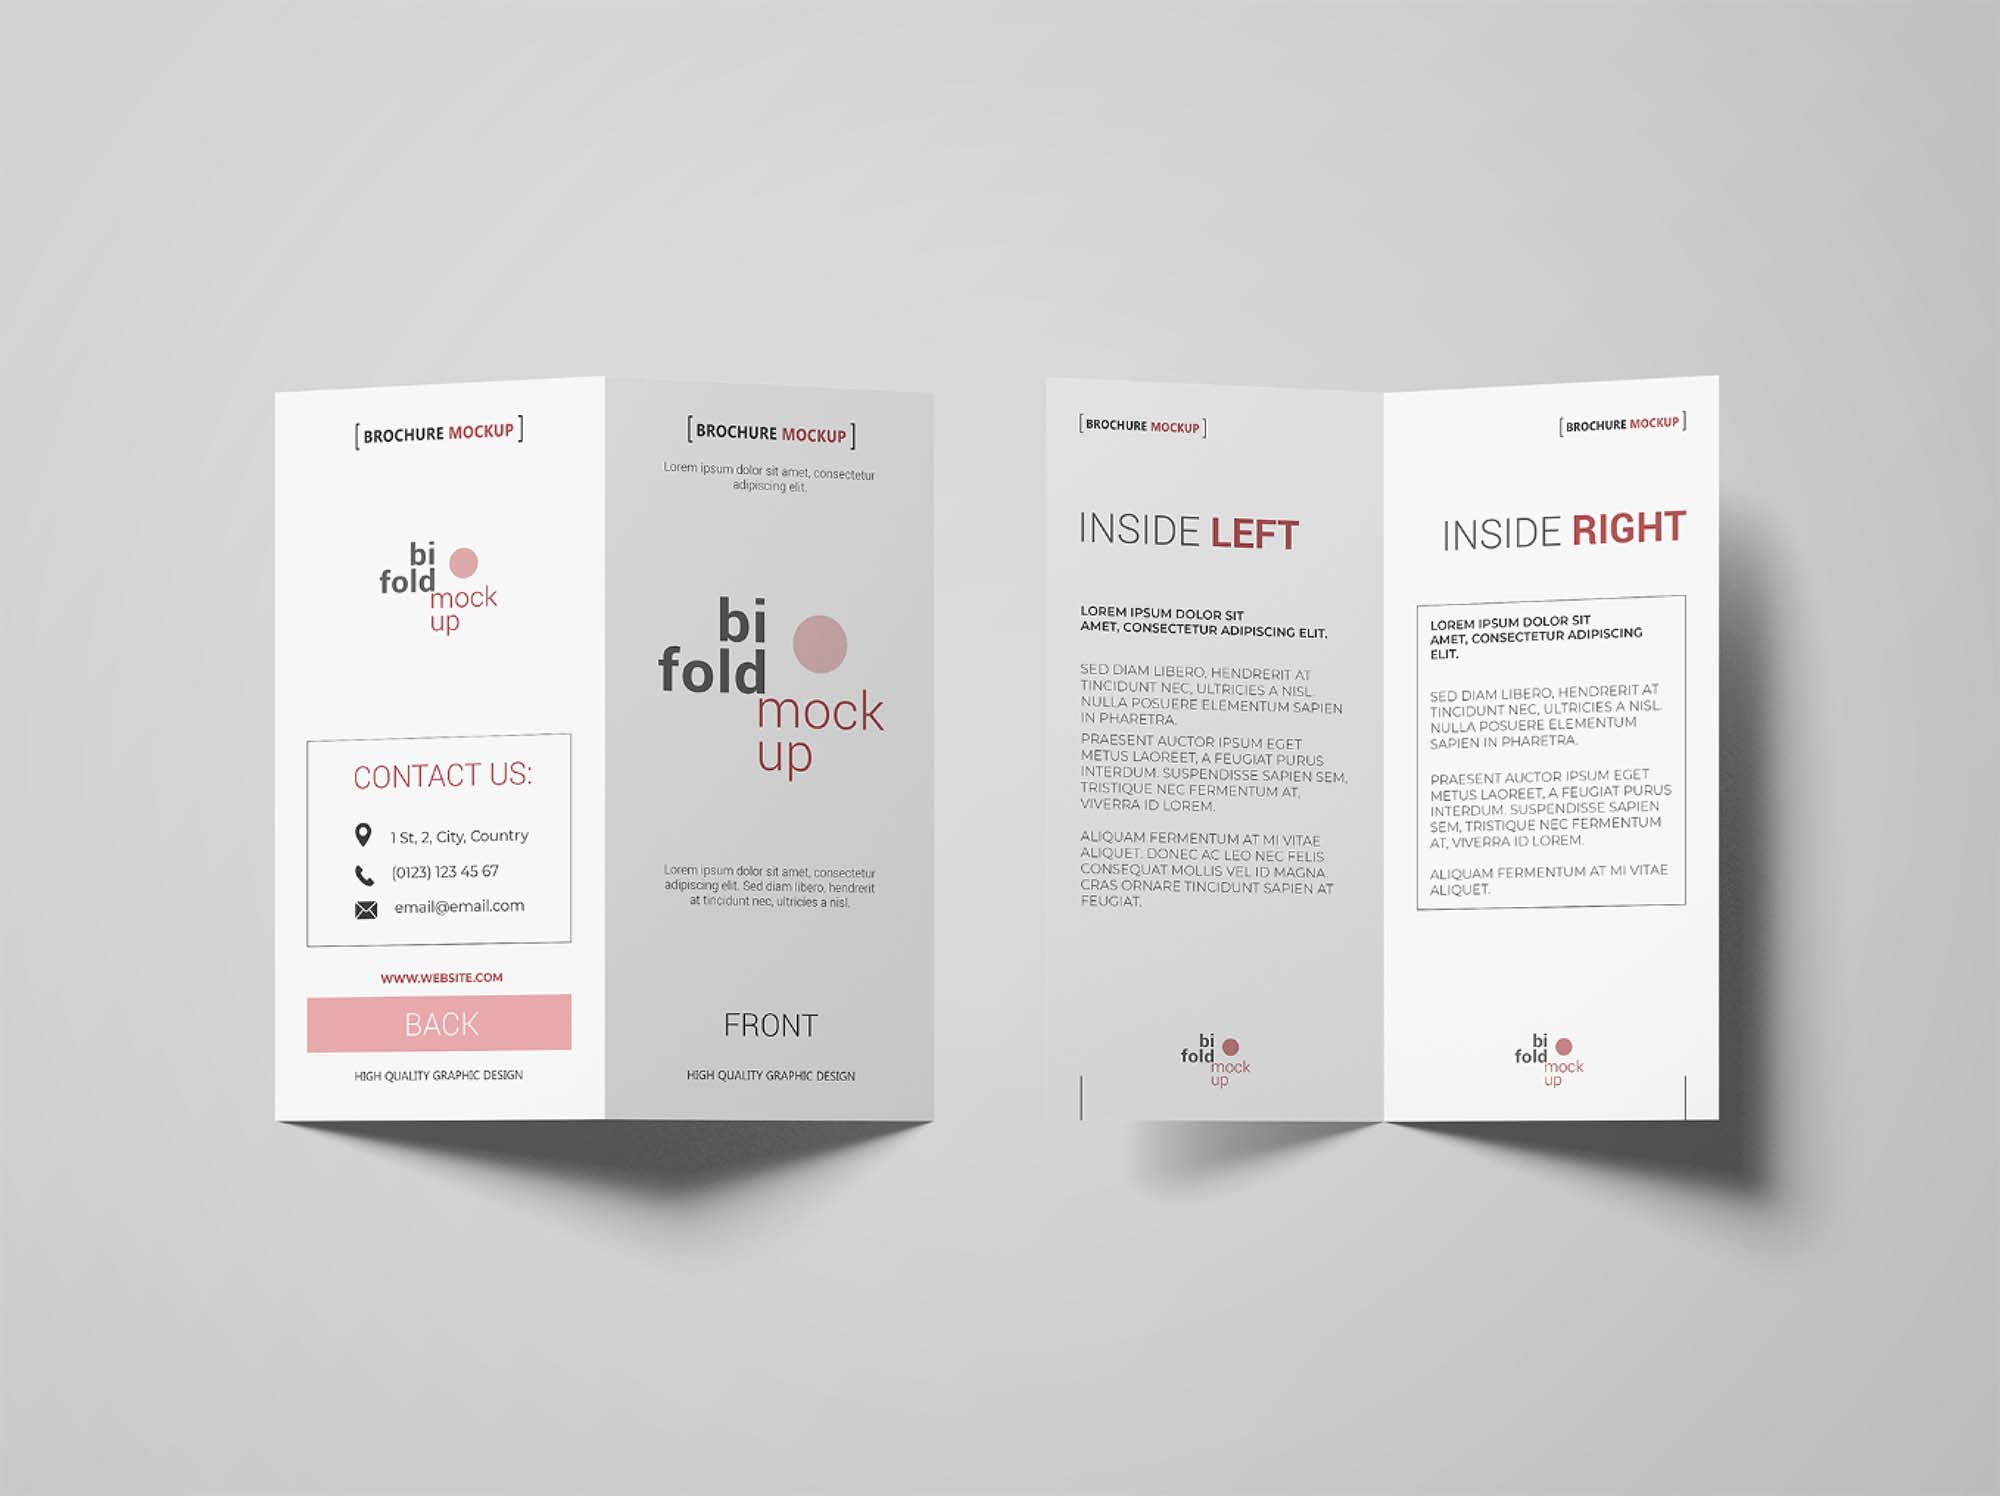 Bifold Invitation Mockup